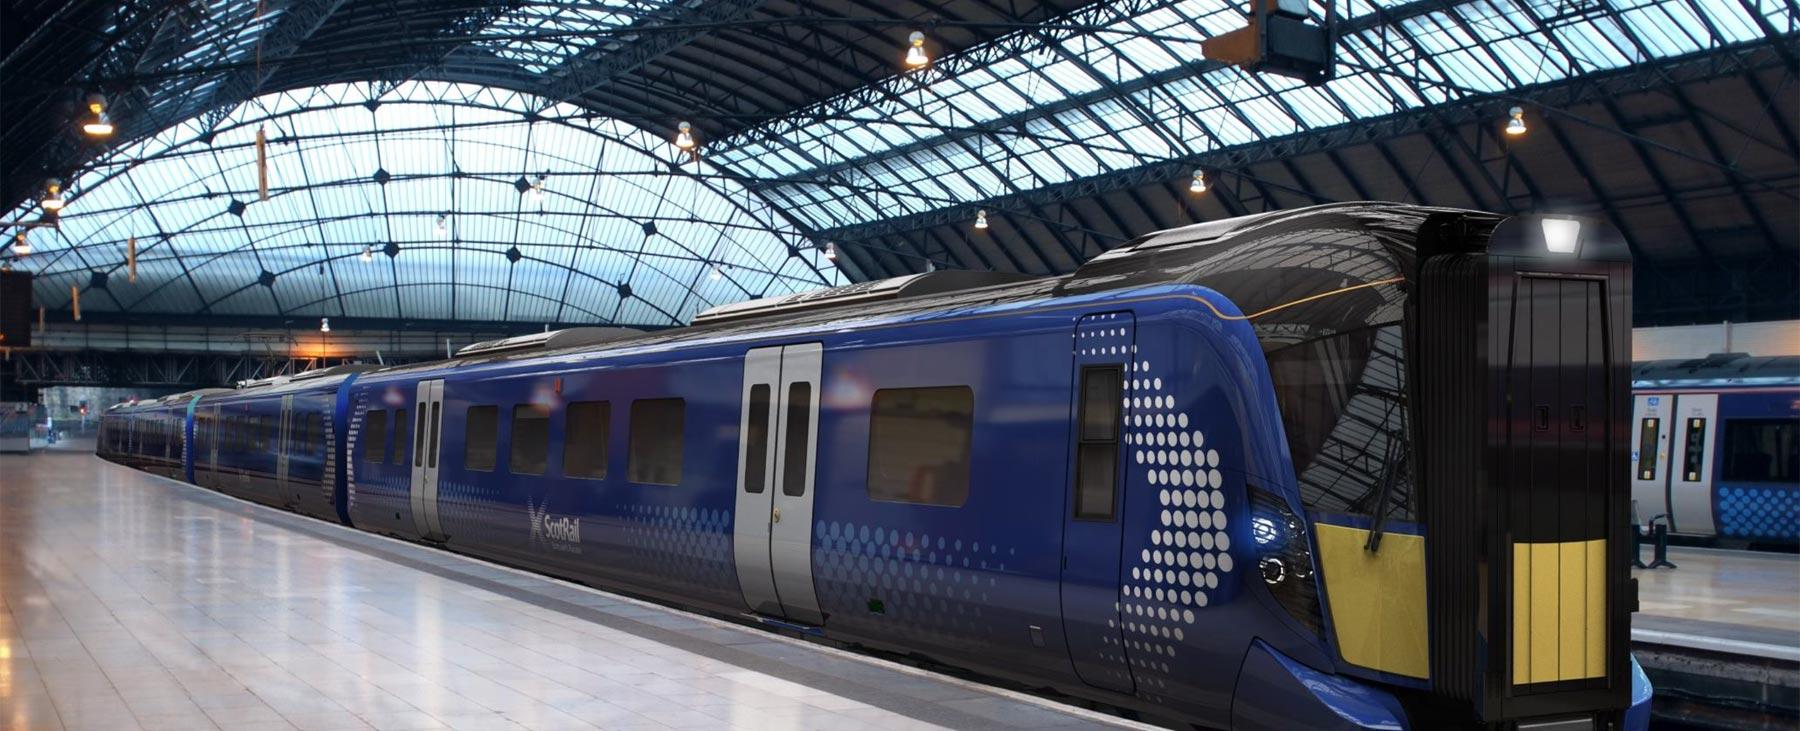 Hitachi train at Glasgow Queen Street station